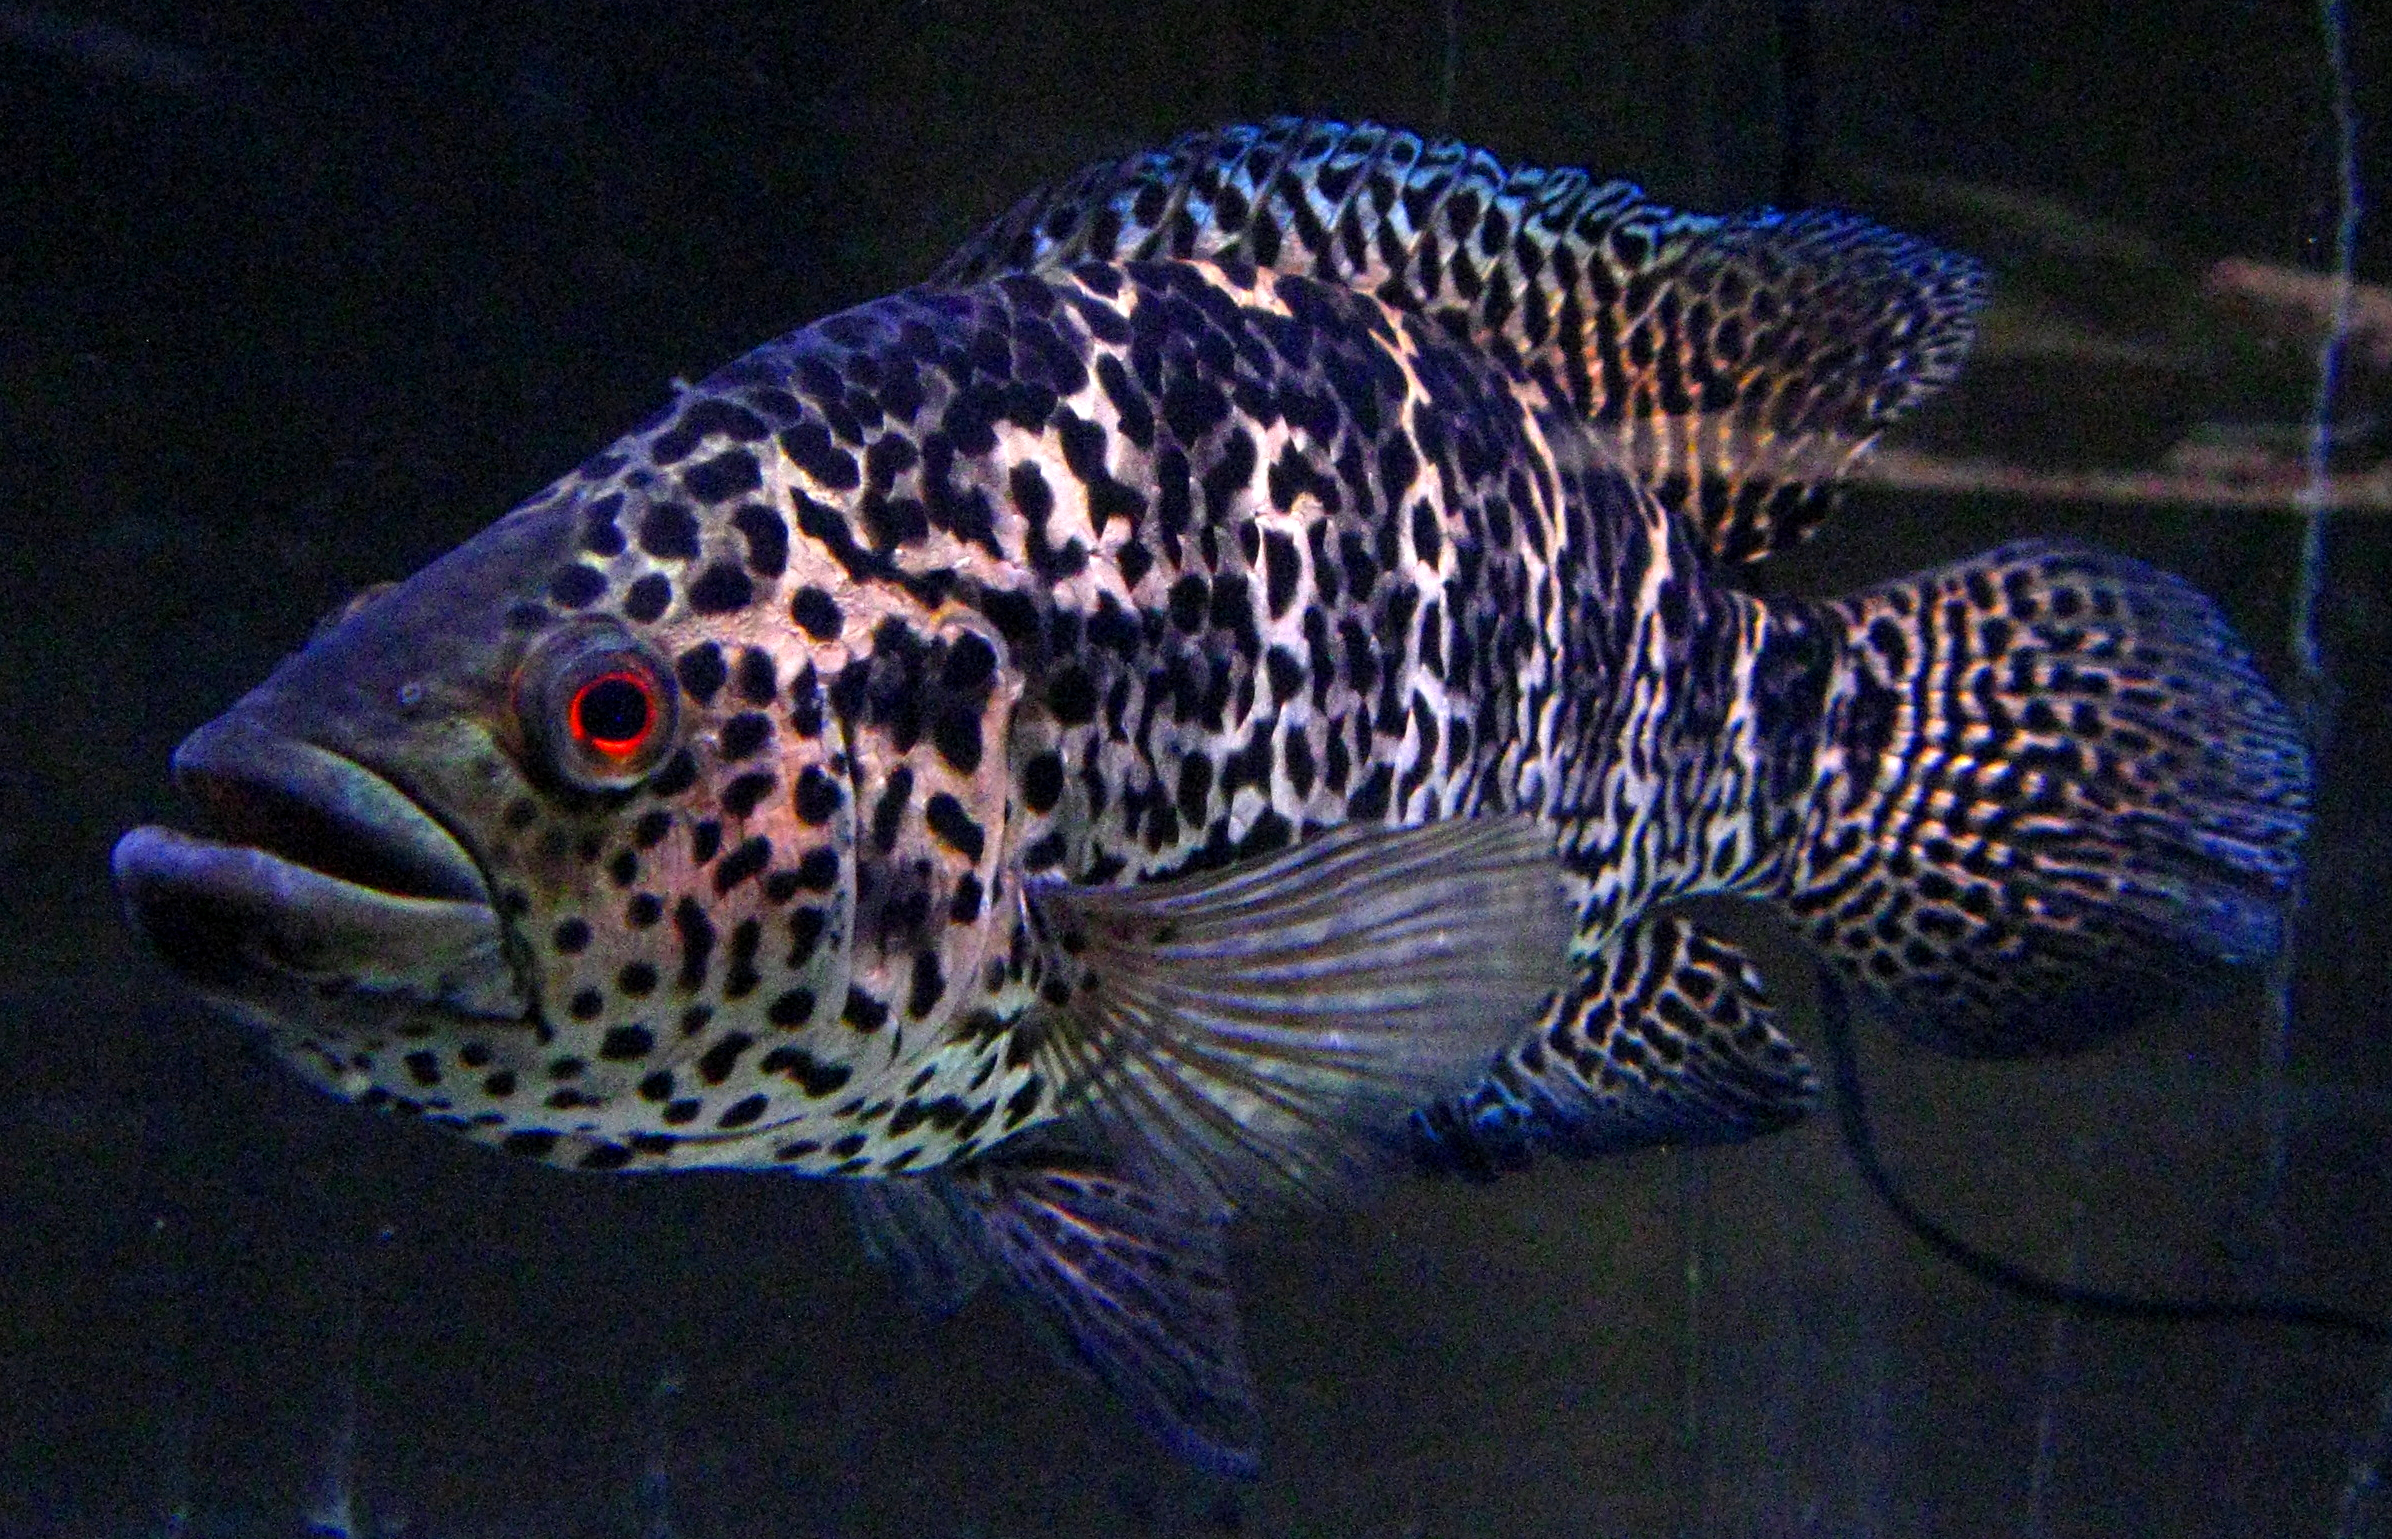 Dr Seuss Name Tag Template moreover Zebra Fish Danio Rerio additionally Oscar  fish also Guppy Fish likewise Shark Tale. on oscar fish eggs